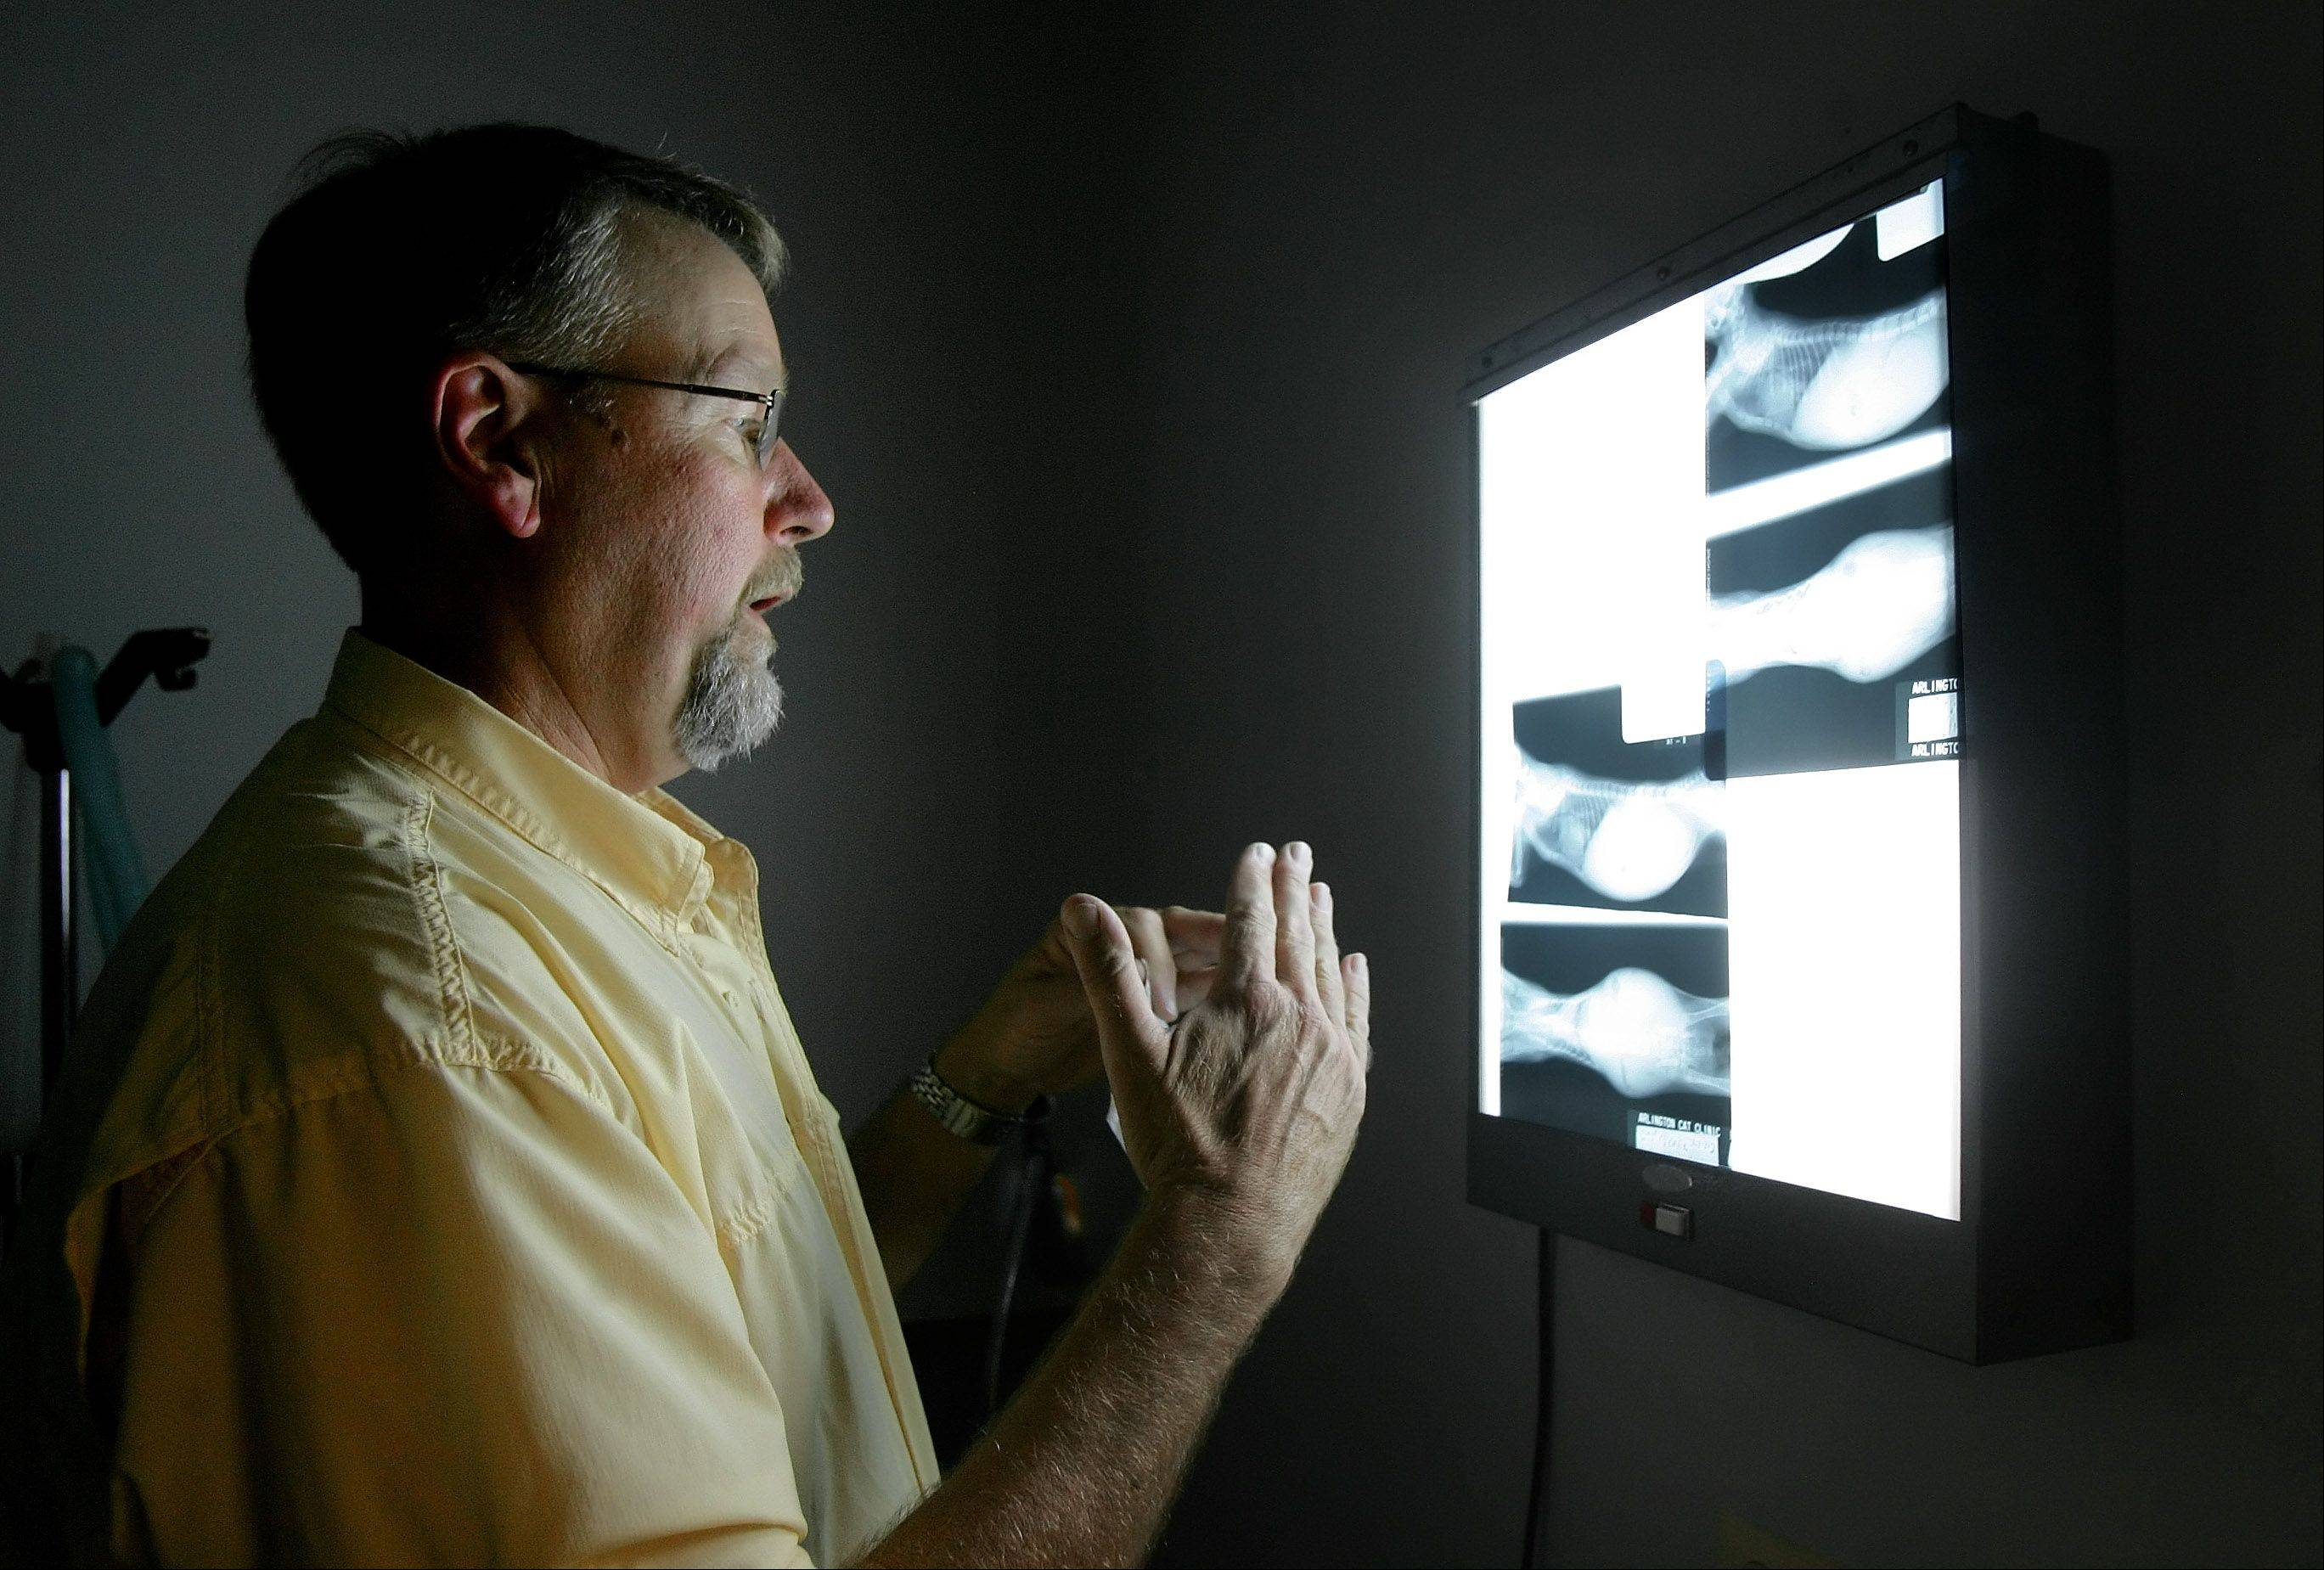 Veterinarian Dr. Bob Esbensen stops to look at an X-ray of a kitten at the Arlington Cat Clinic.